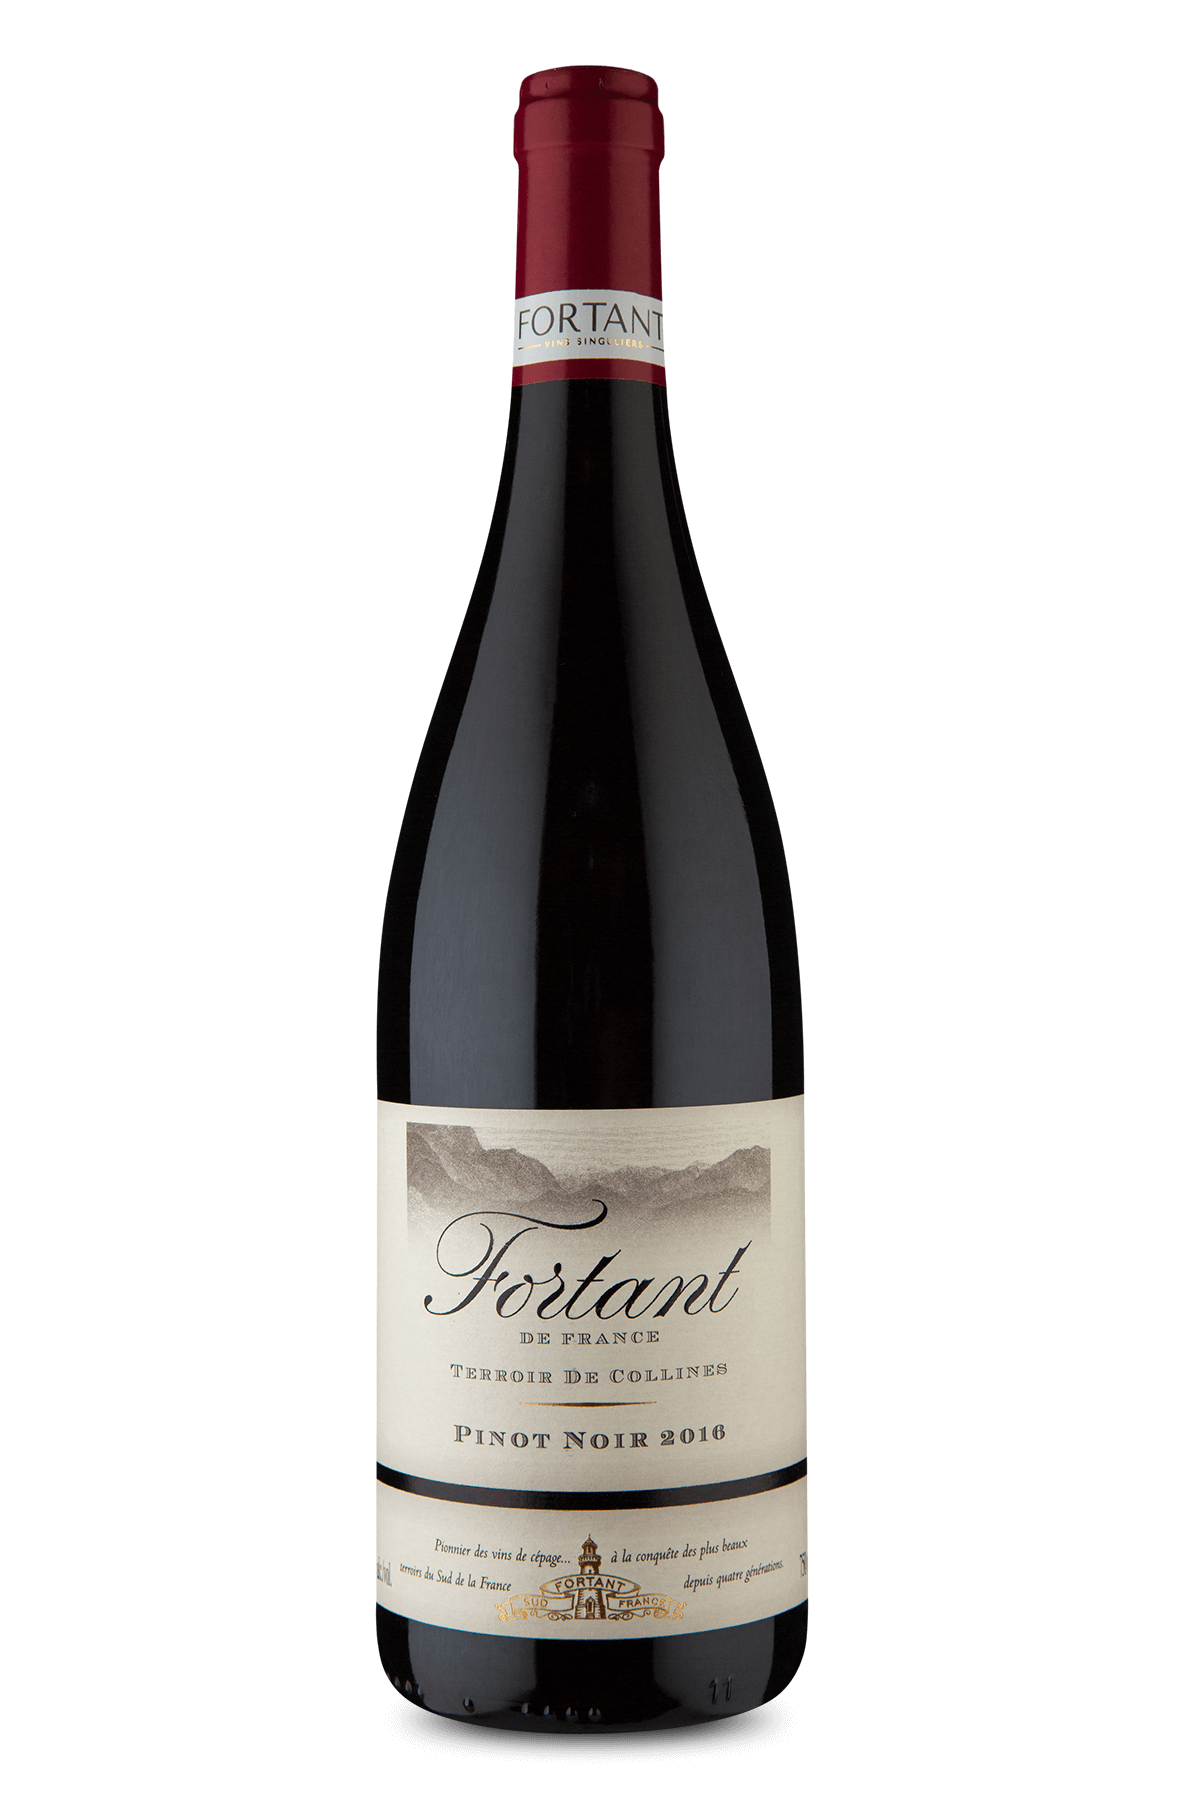 Fortant de France Terroir de Collines Pinot Noir 2016